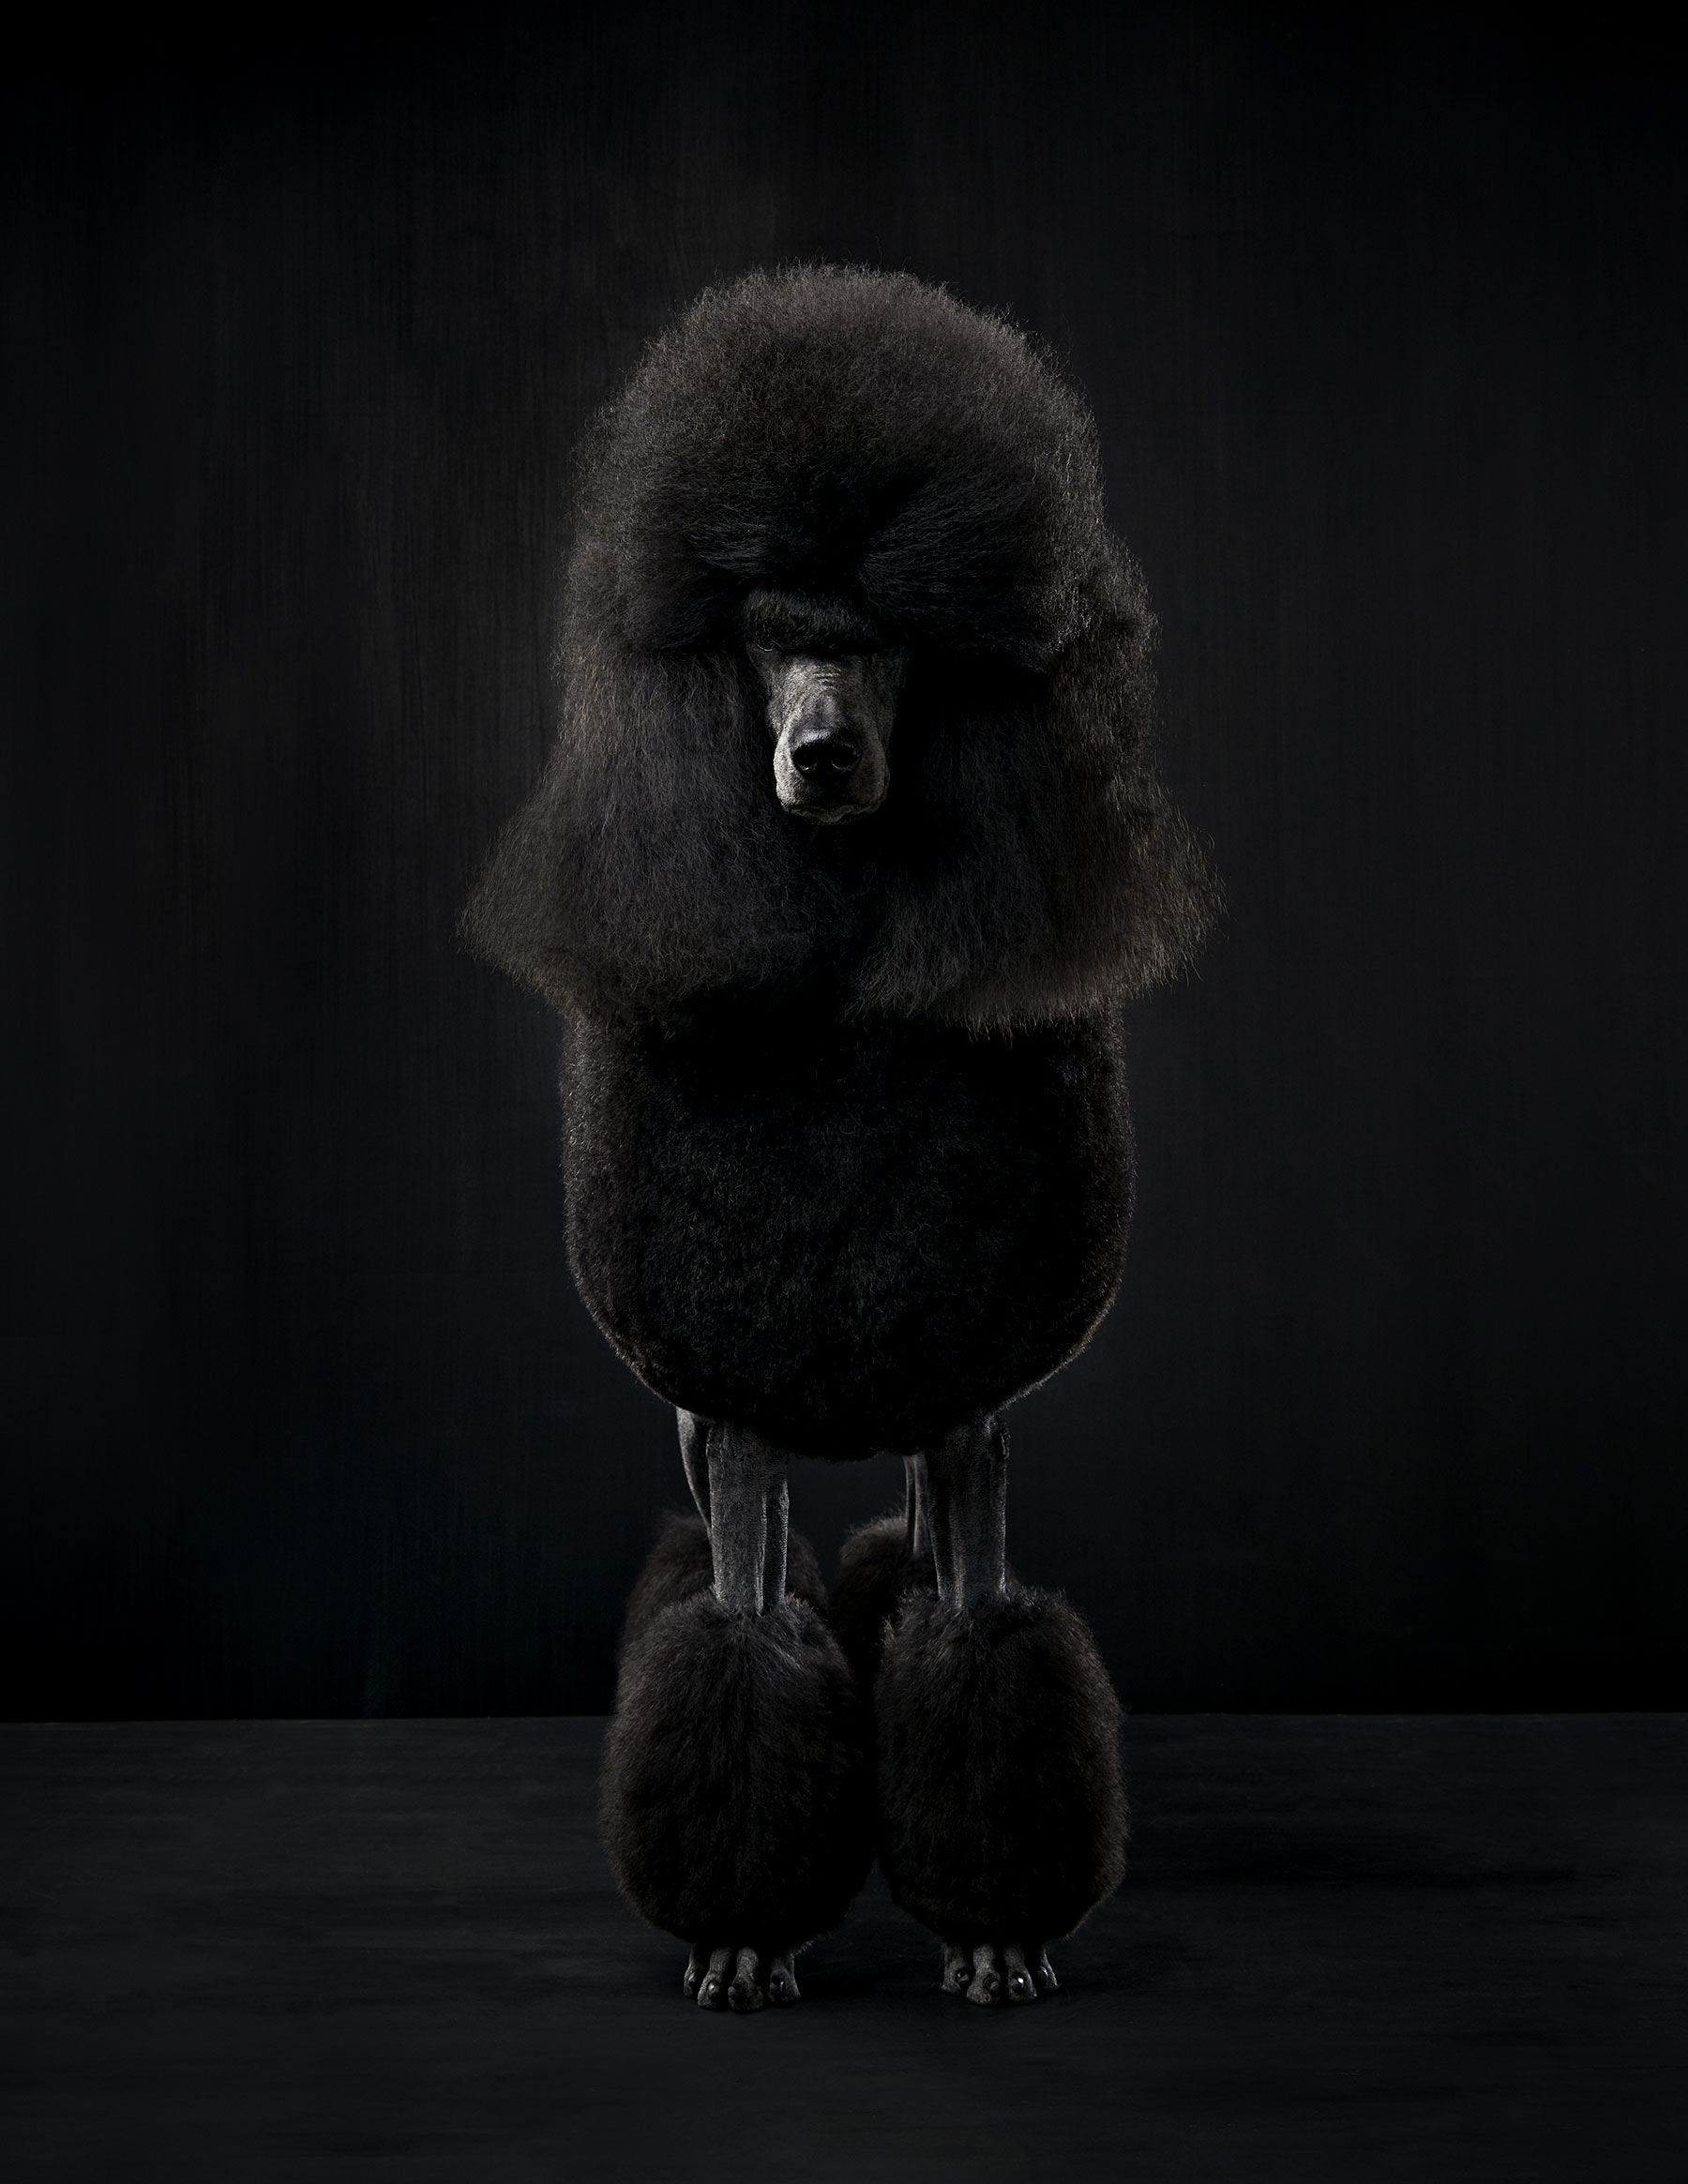 A-studio-portrait-of-a-black-Standard-Poodle-dog-against-a-black-background